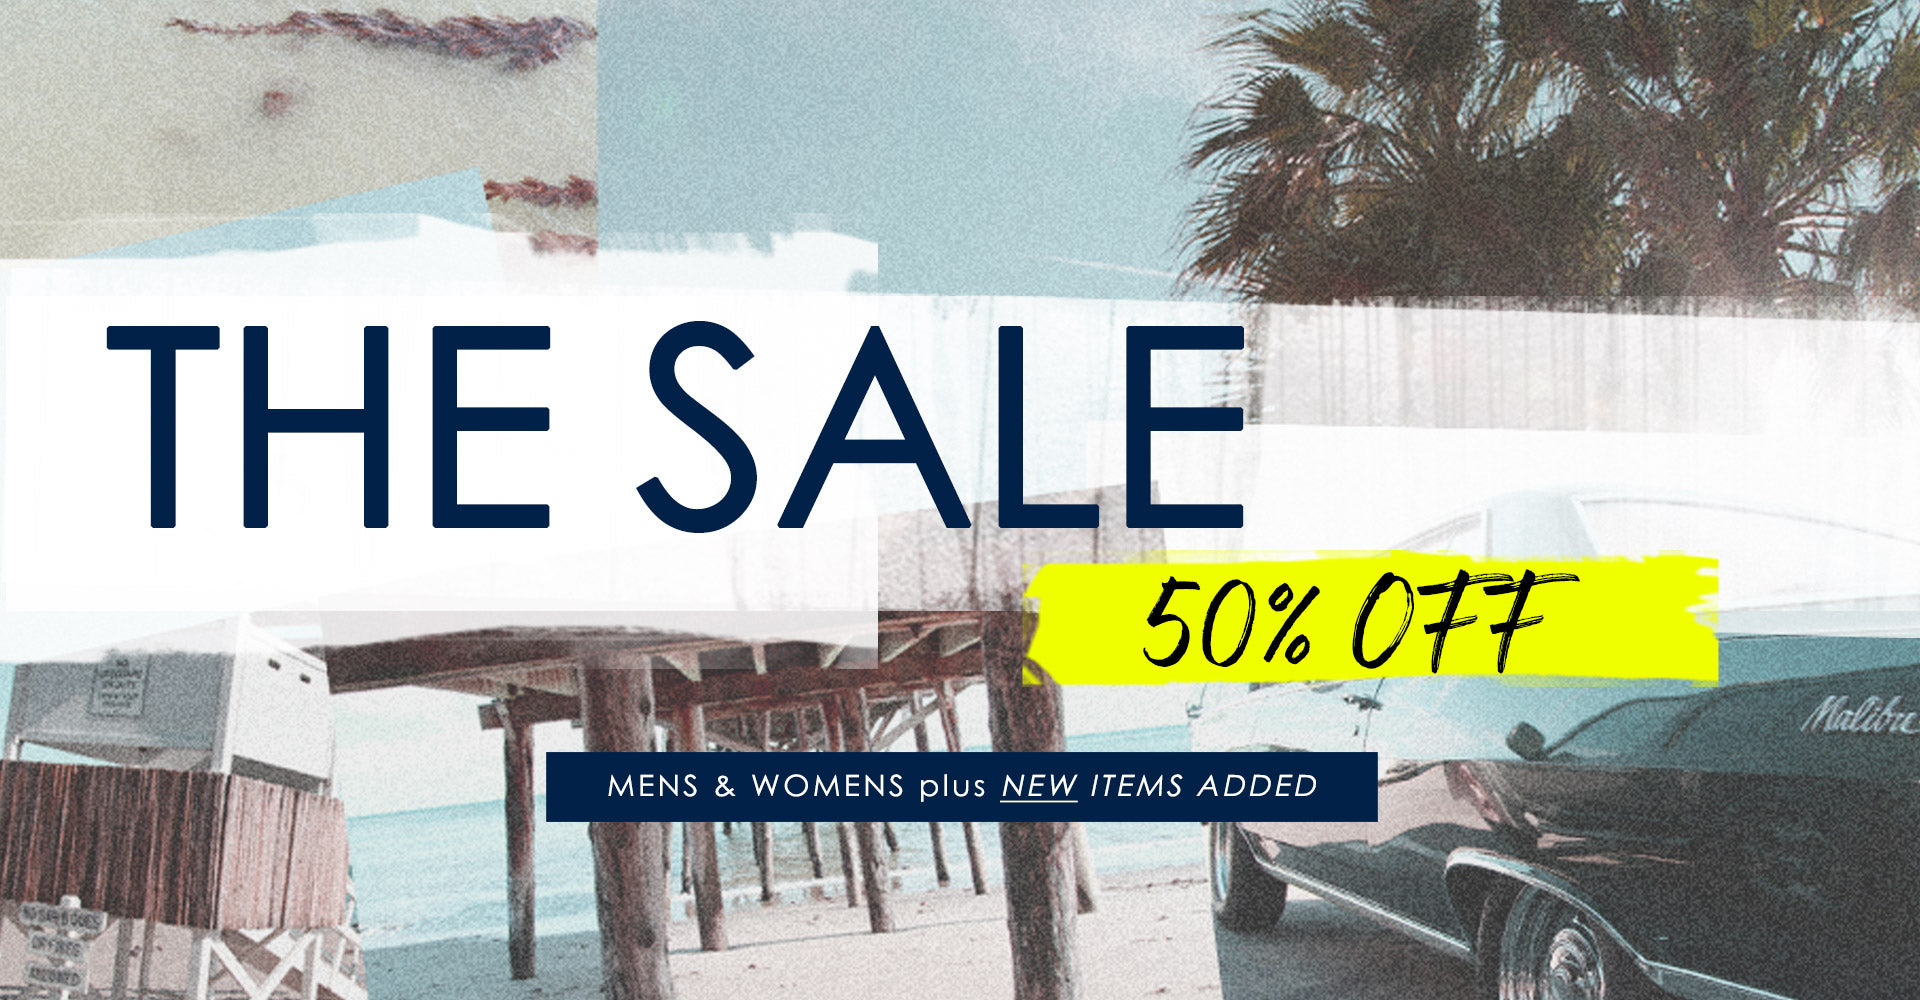 The Ron Herman Summer Sale Starts NOW 50% OFF Select Mens & Womens / Online Only Shop the Ron Herman 50% OFF Sale TODAY